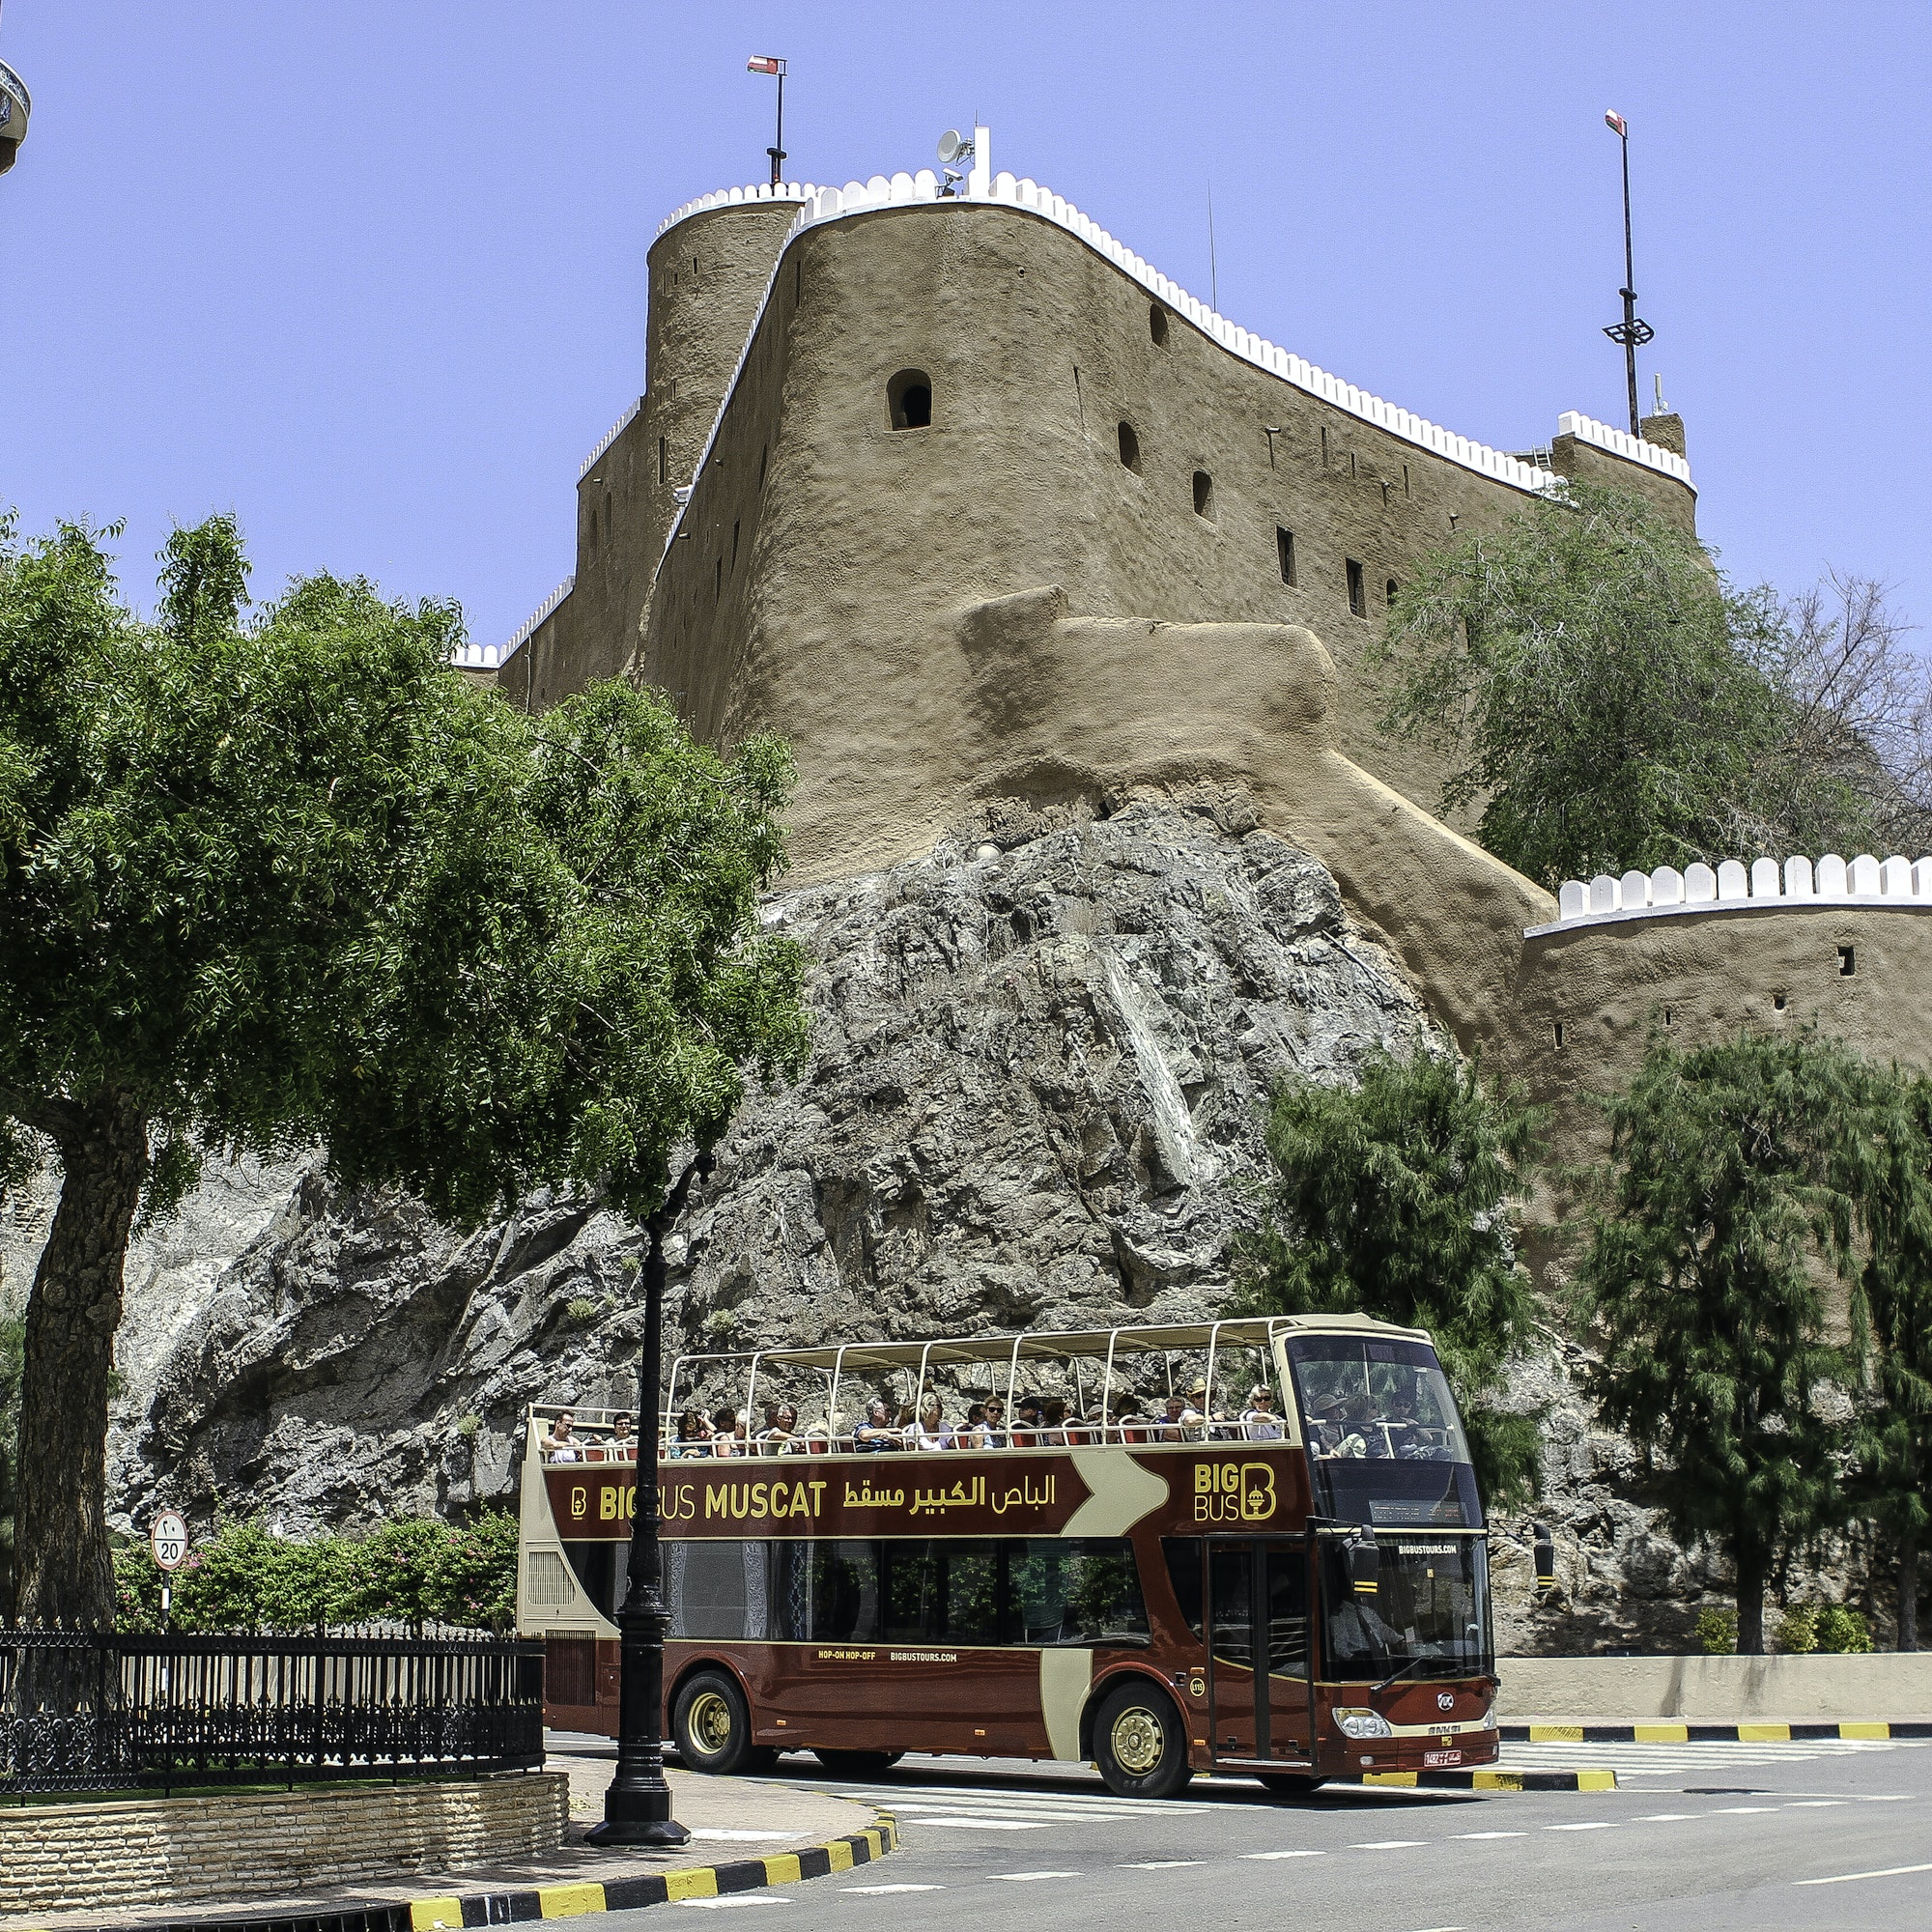 Hop-on Hop-off Bus Muscat cover